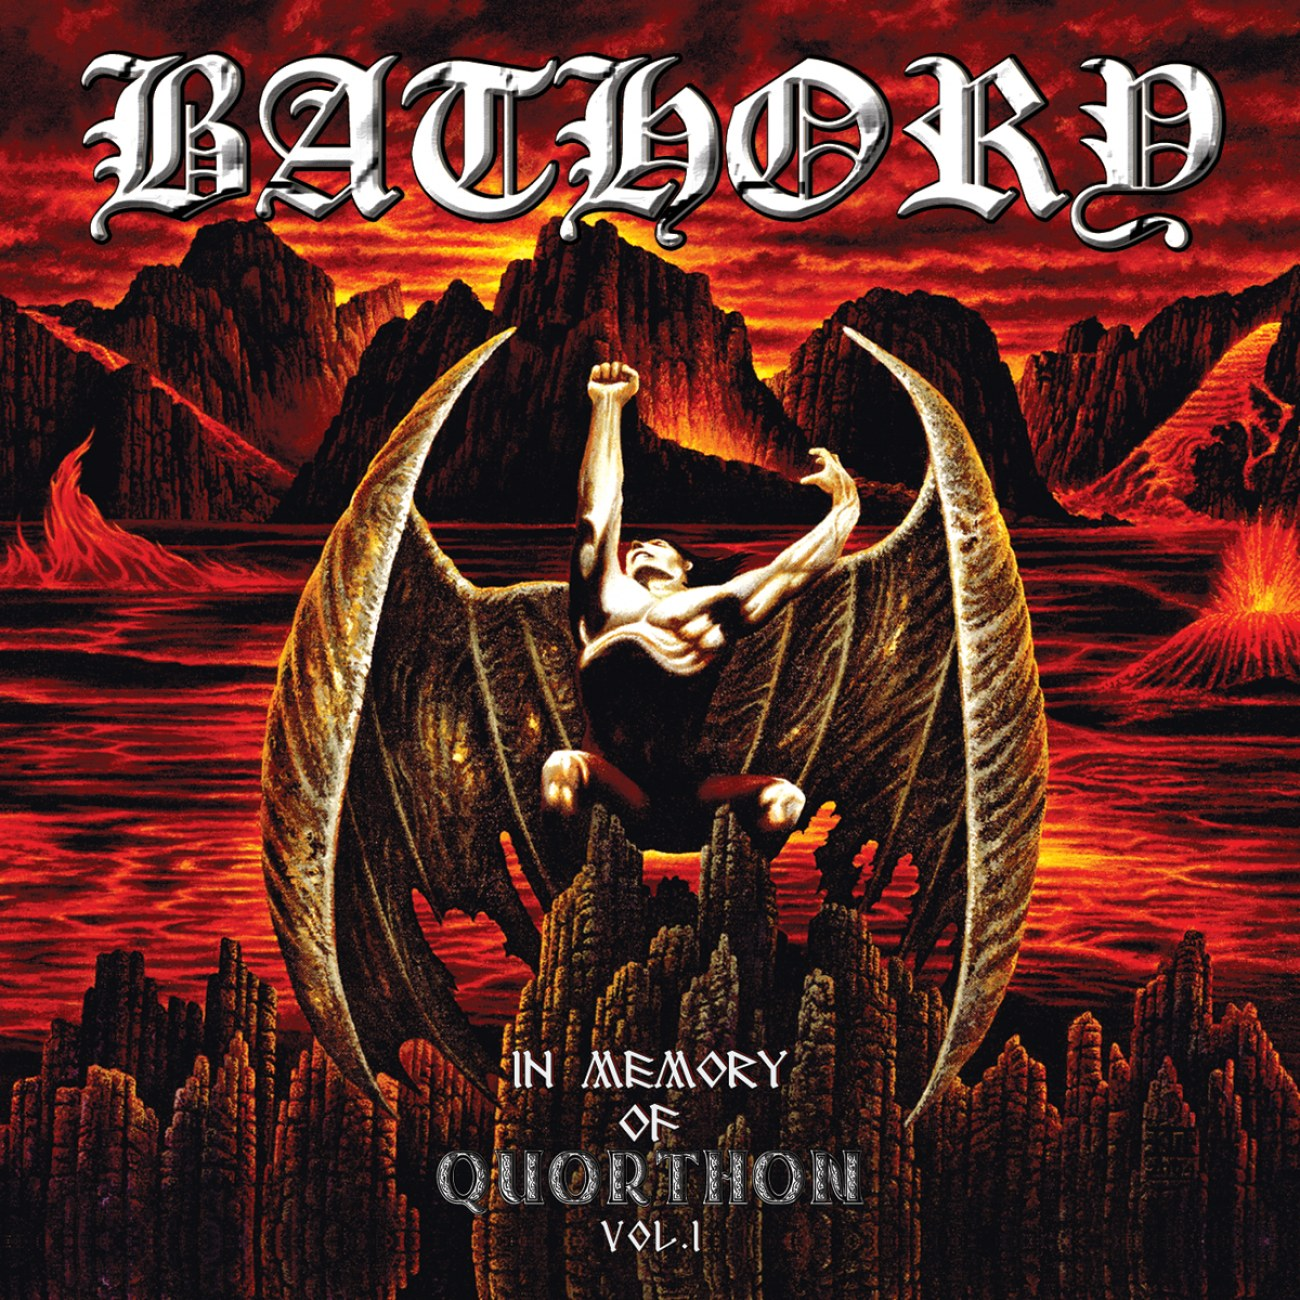 Review for Bathory - In Memory of Quorthon (Vol. I)